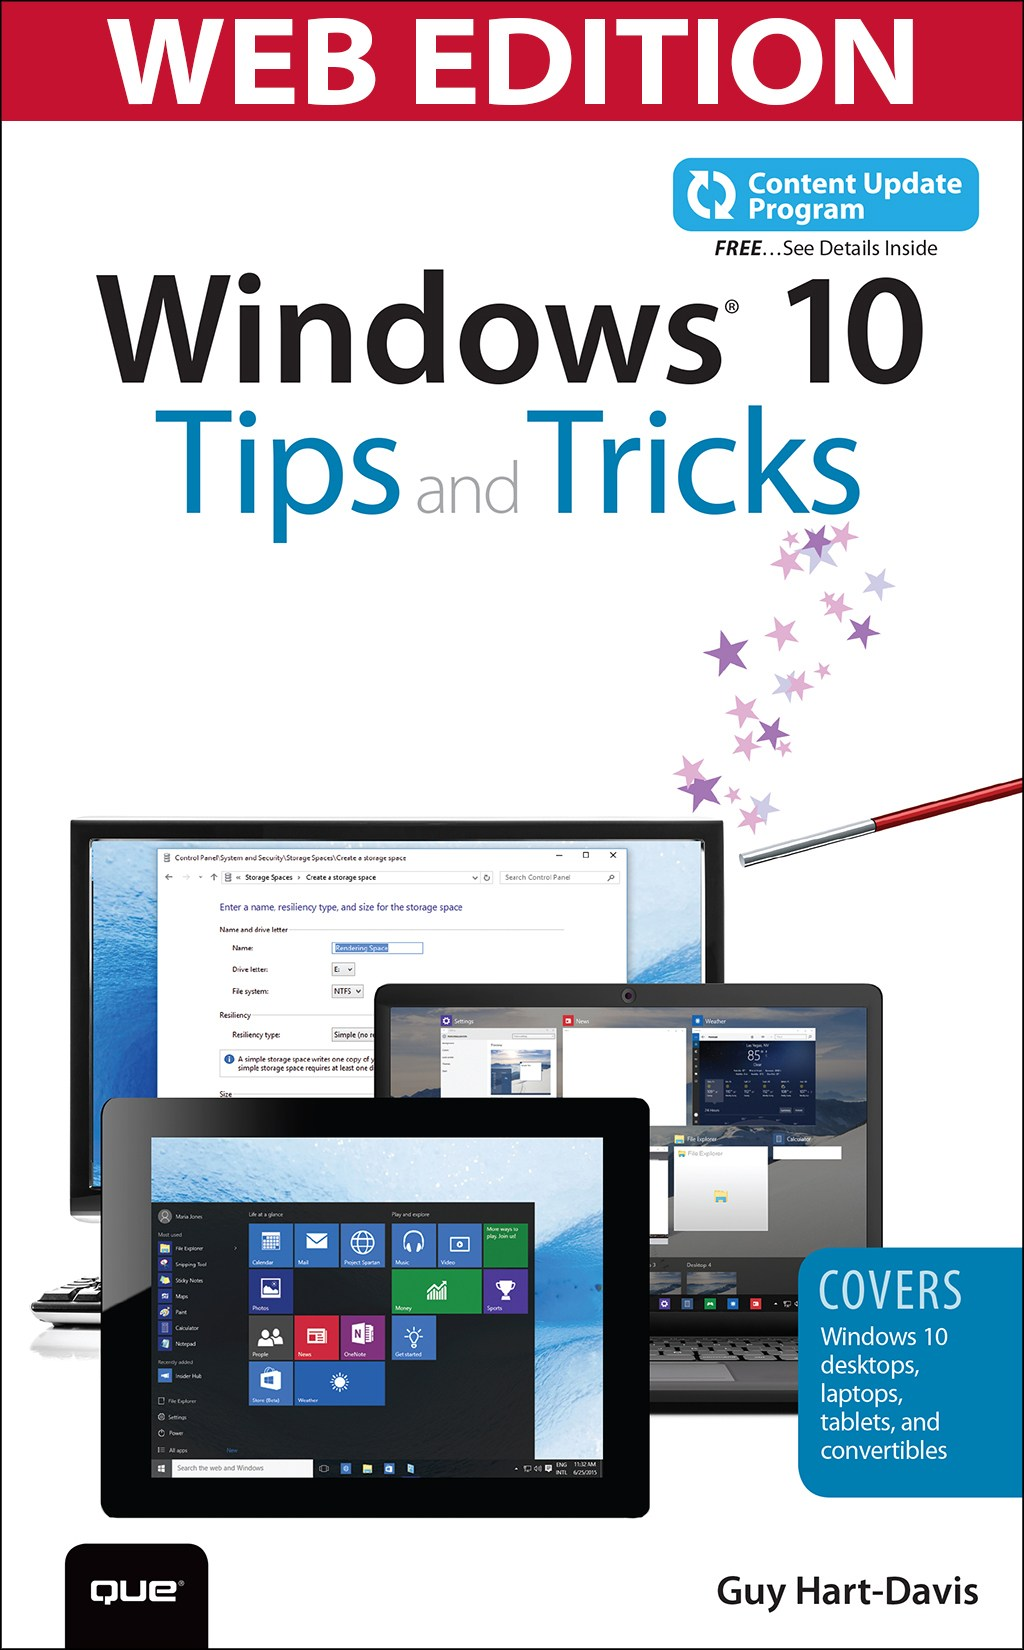 Windows 10 Tips and Tricks (Web Edition with Content Update Program)